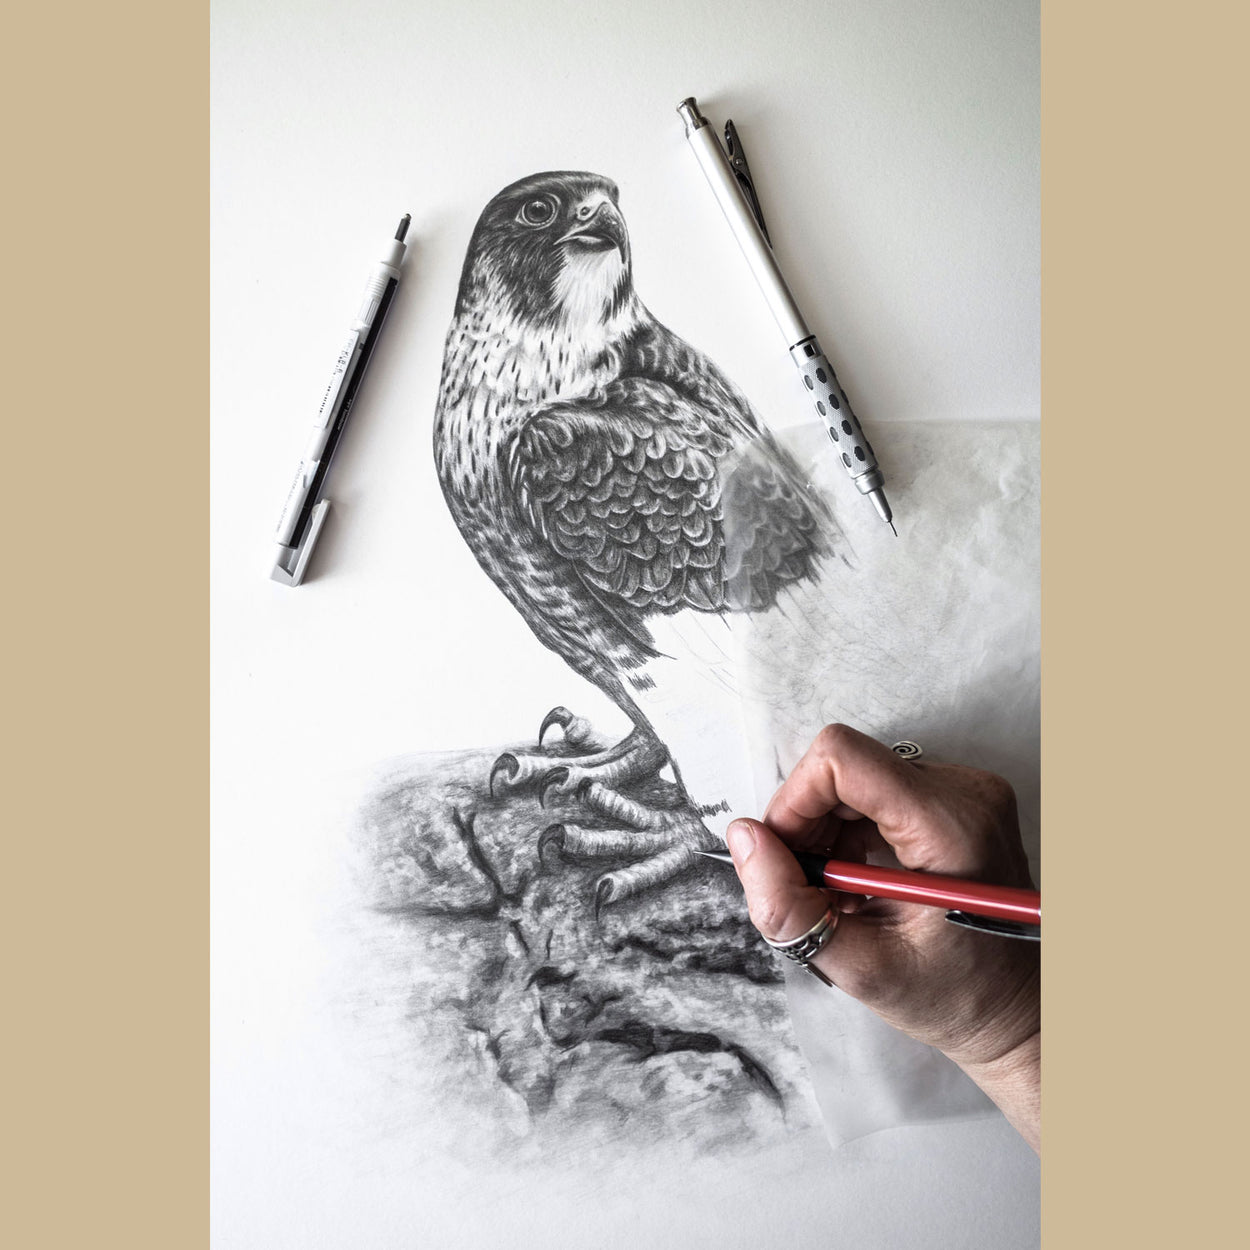 Peregrine Bird of Prey Drawing Work in Progress - The Thriving Wild